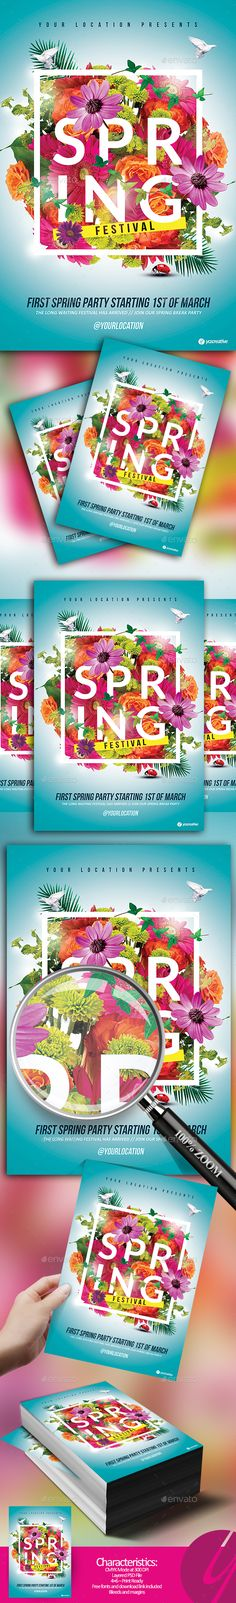 Spring Break Party Flyer  Designing  Creating